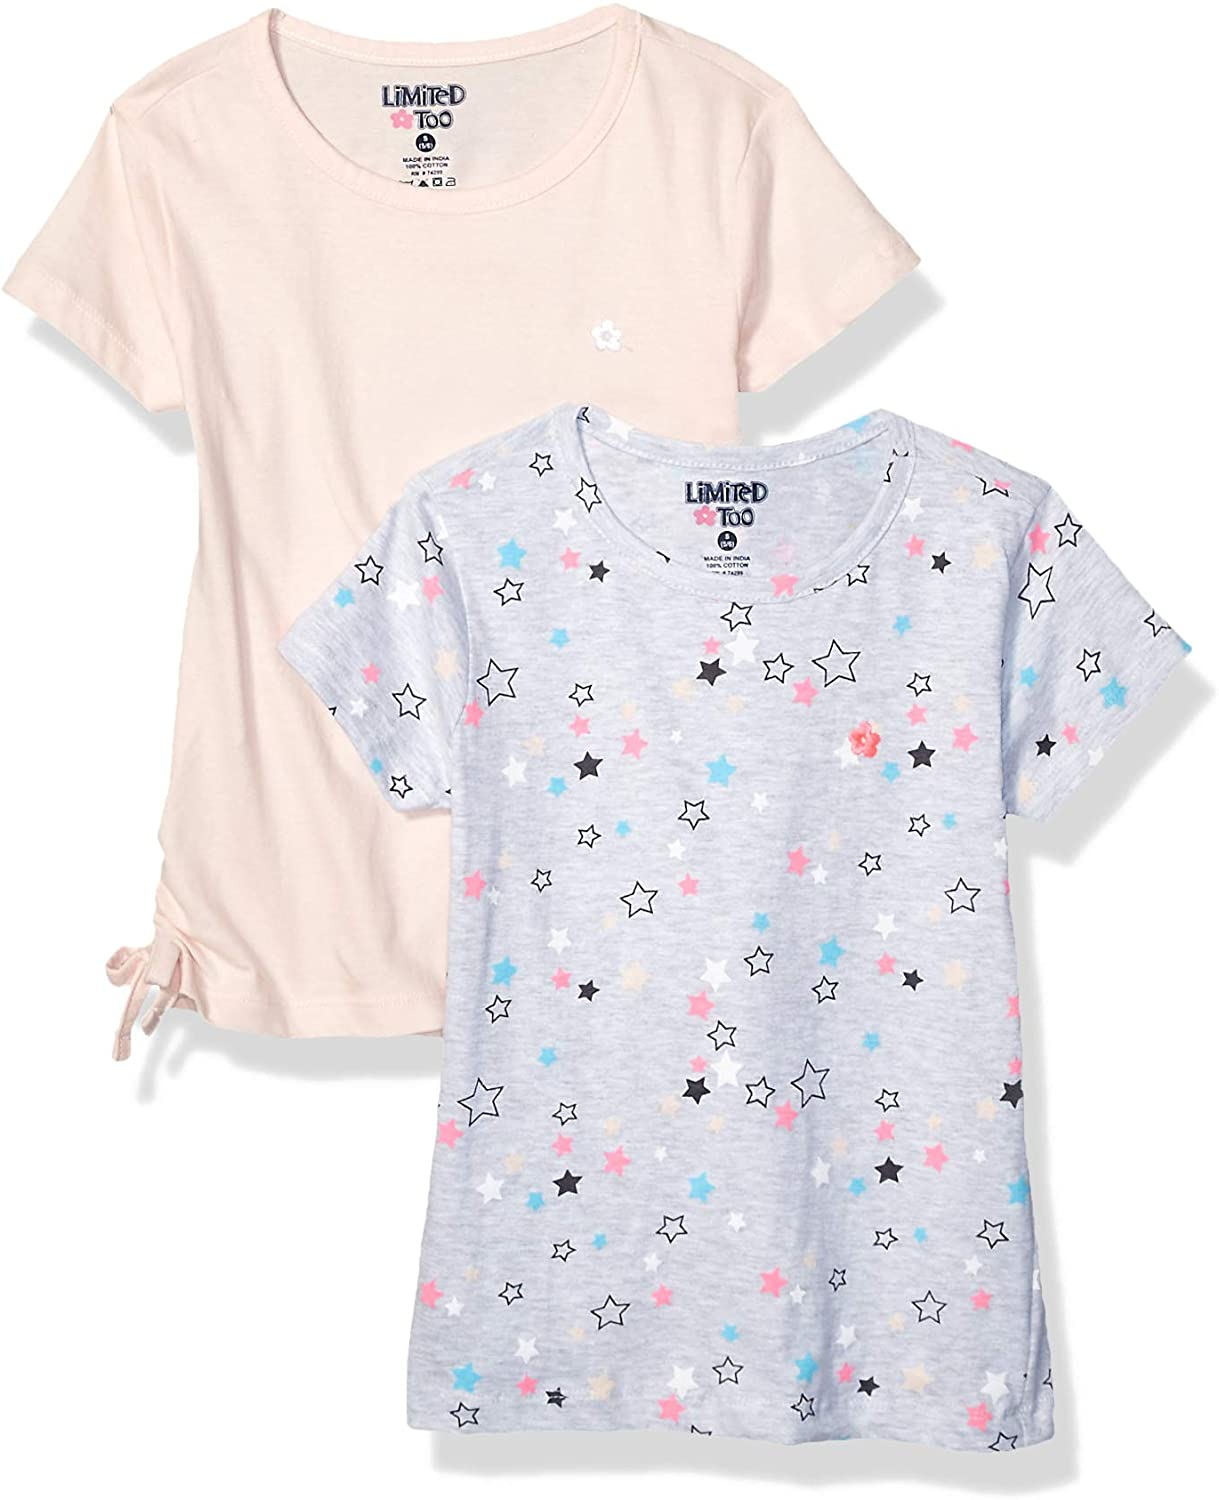 Limited Too Girls' Big 2 Pack Short Sleeve T-Shirt Set